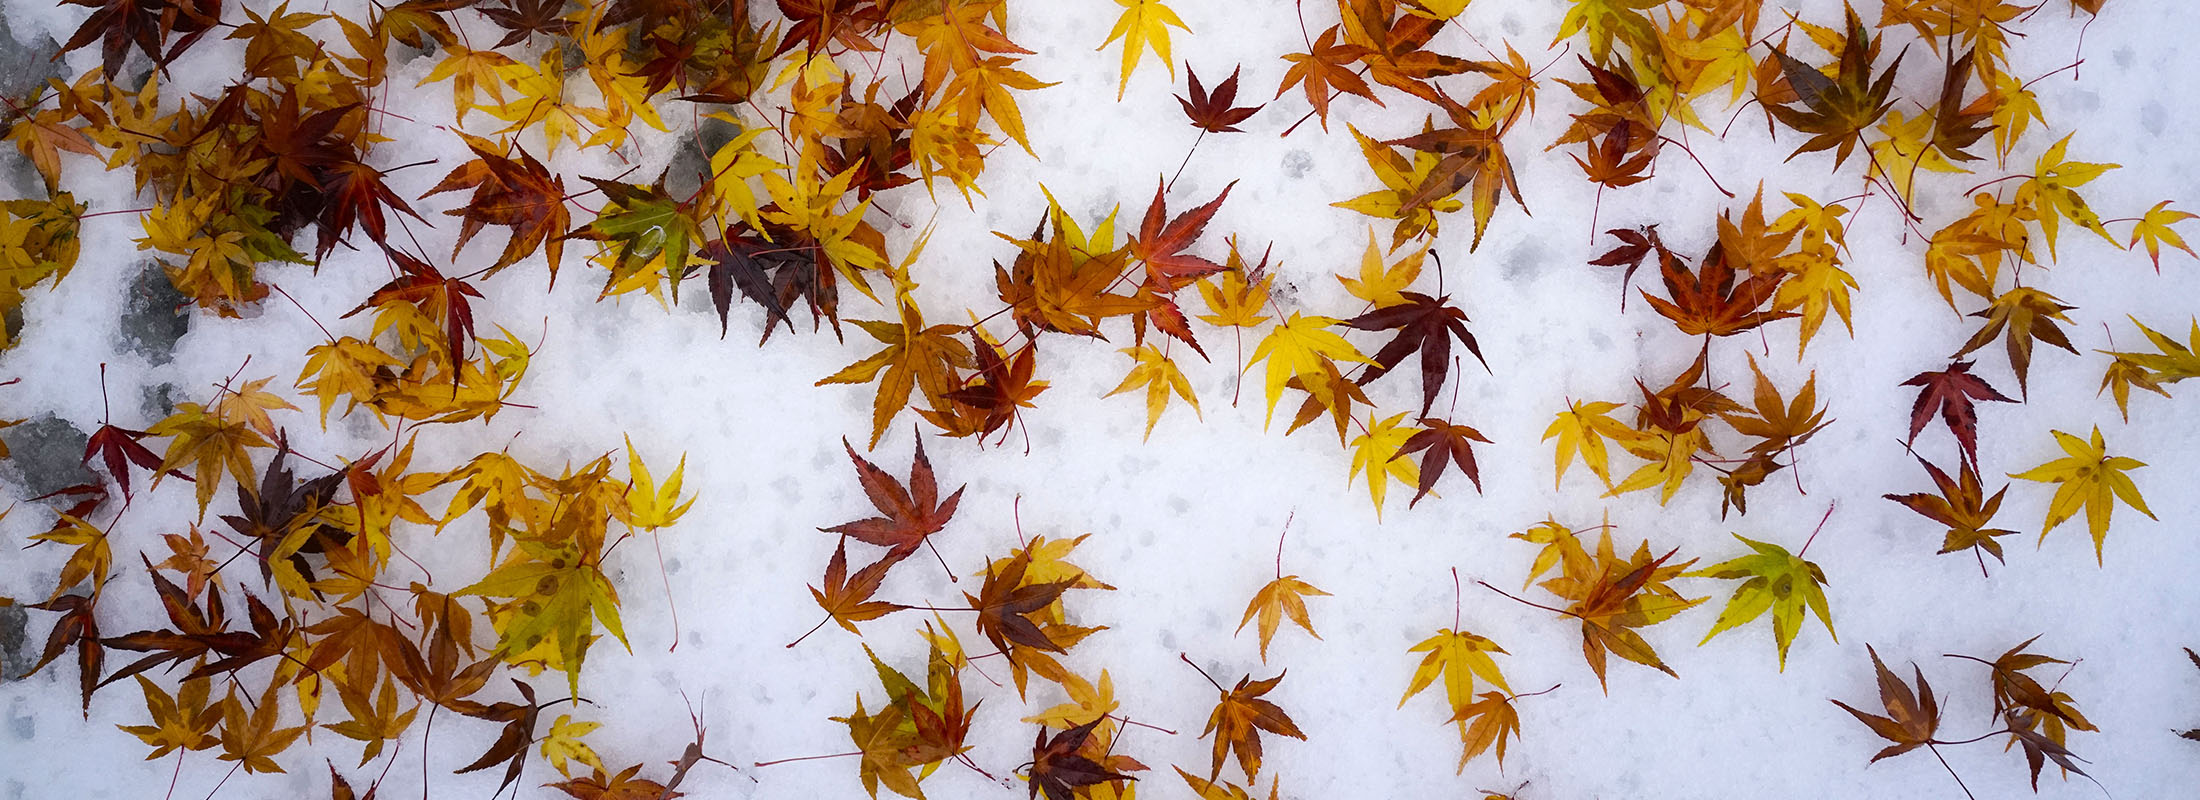 Colorful leaves lay on snow in the Japanese Garden on Nov. 16. (Derek Gee/News file photo)